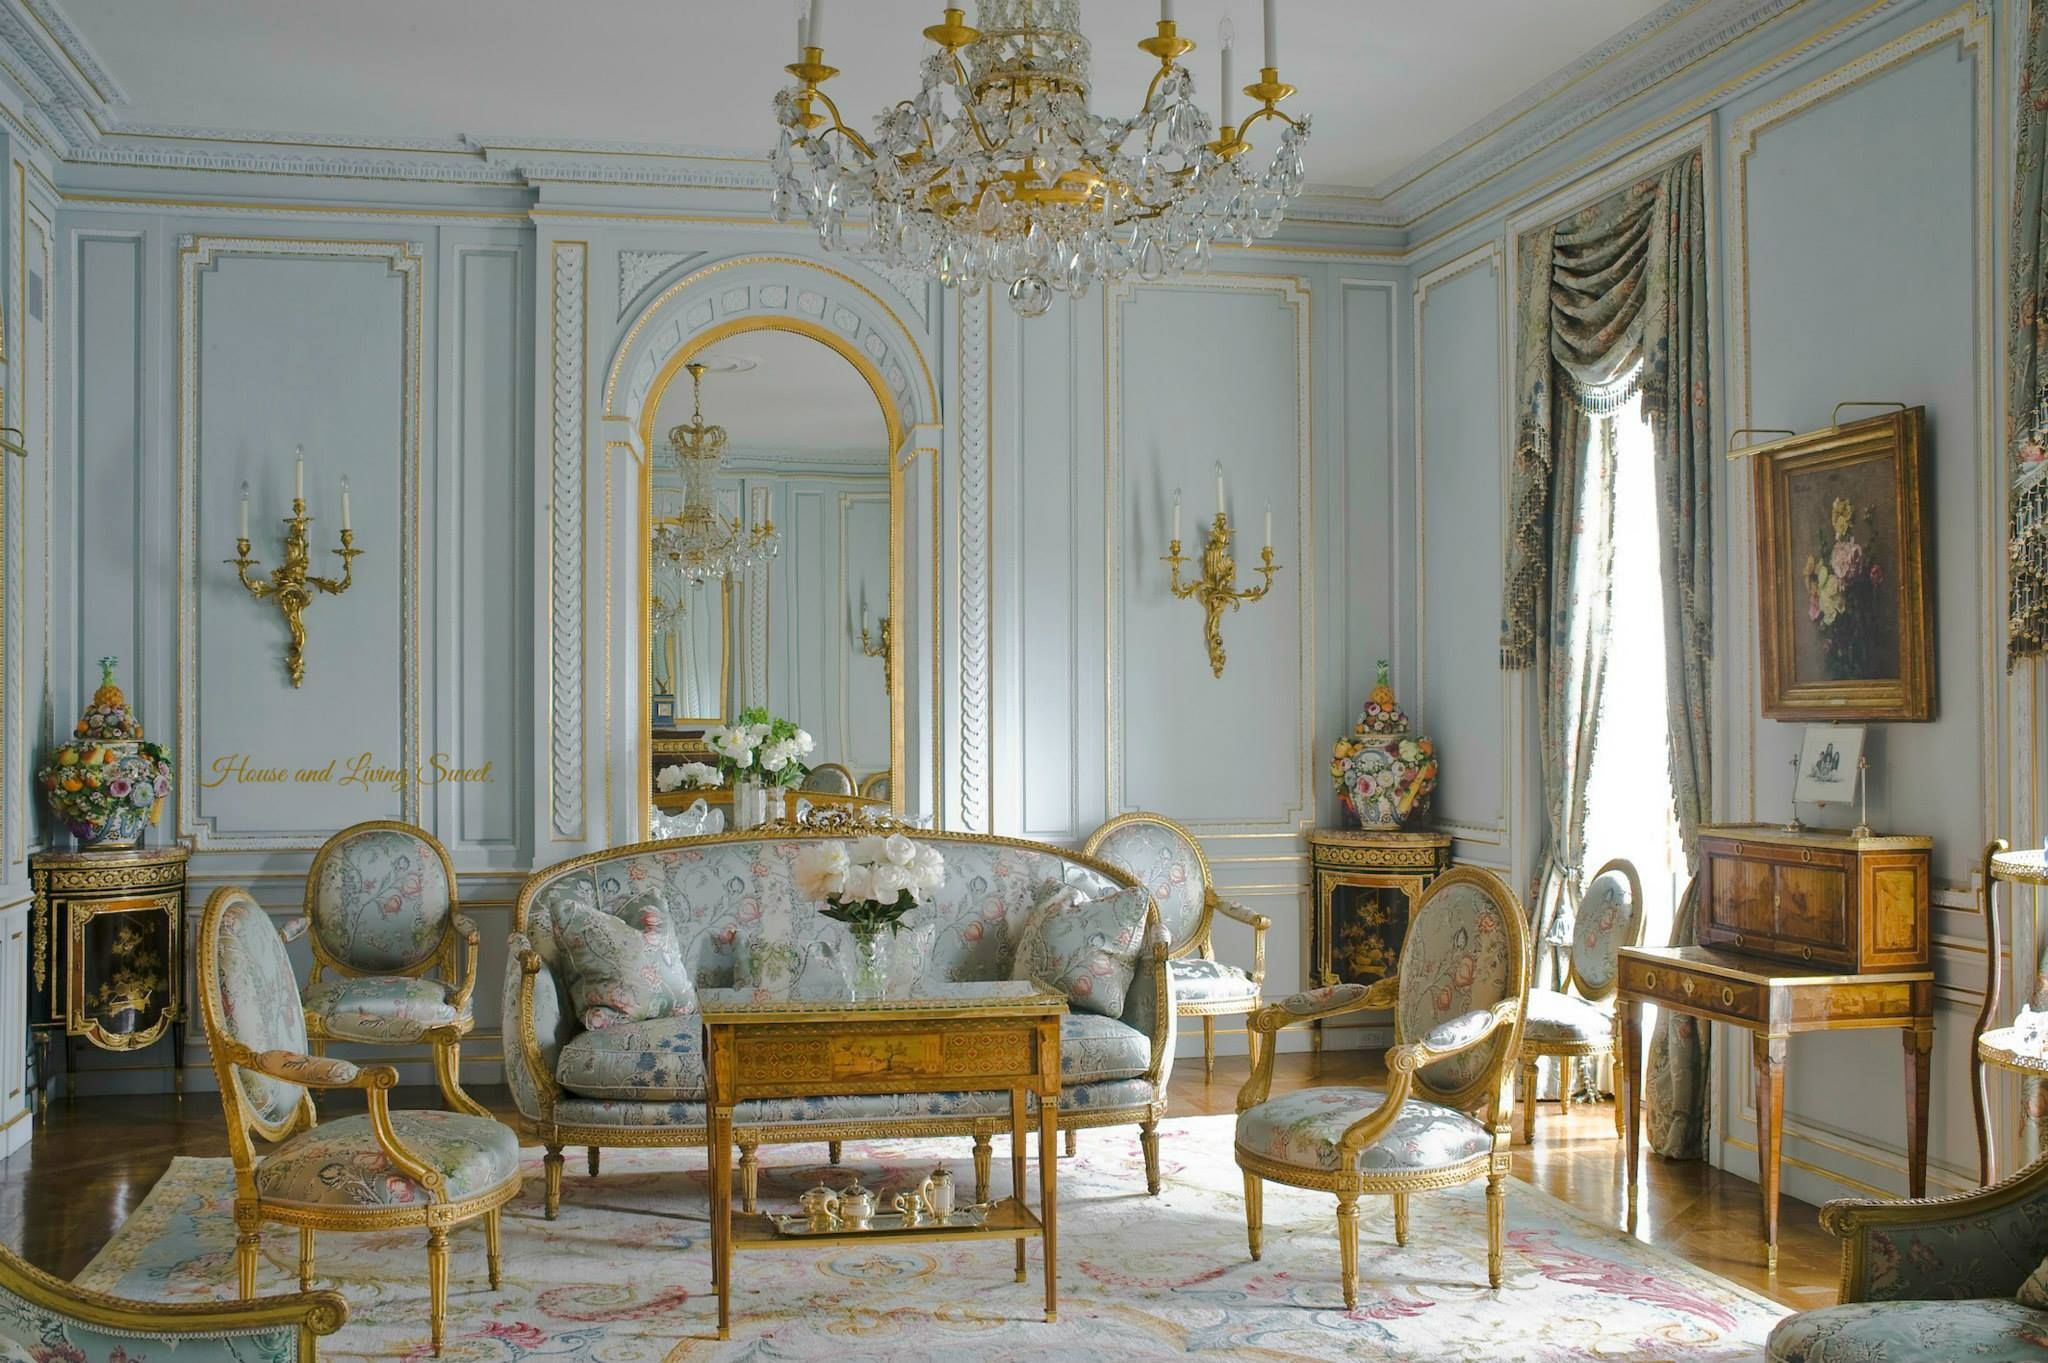 These French Antiques Are In An Old Chateau Where The Architecture